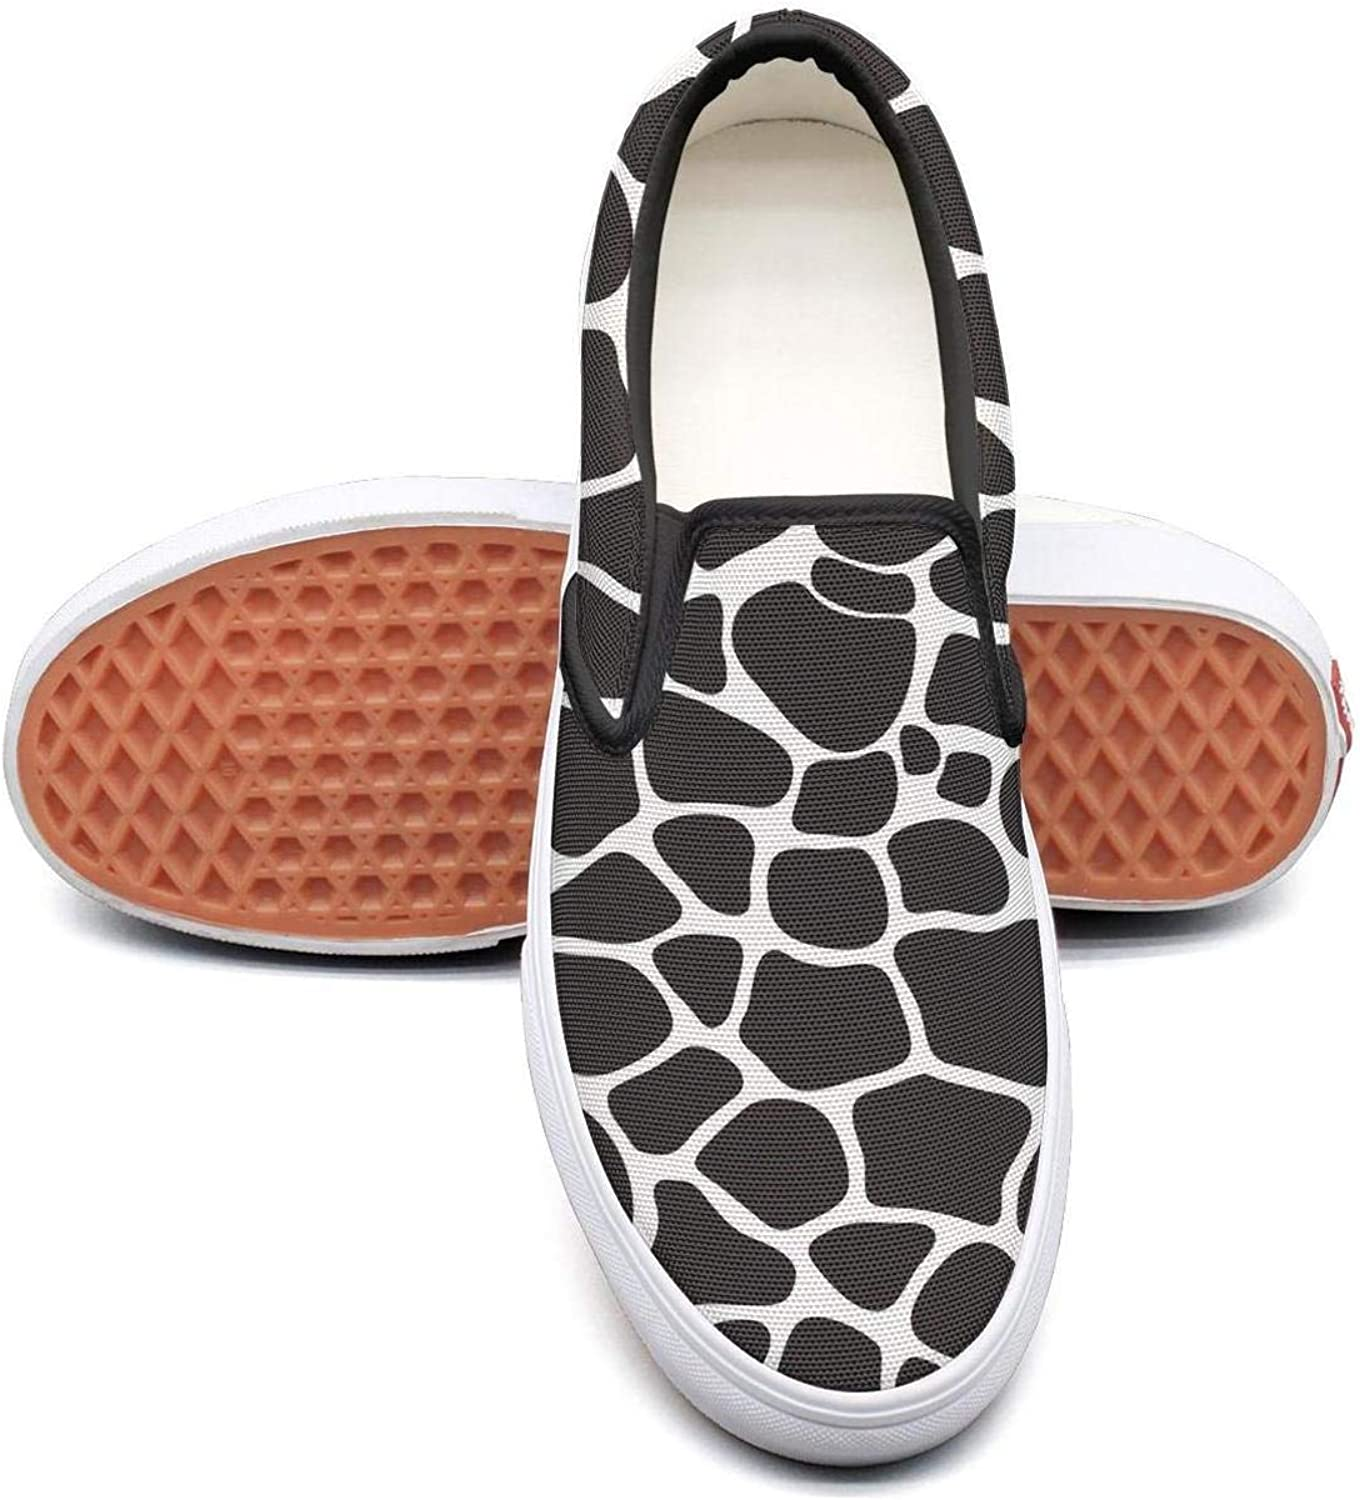 SOFIE MARTIN Black Giraffe Skin Print Women Girls Leisure shoes Low Top Lightweight Breathable